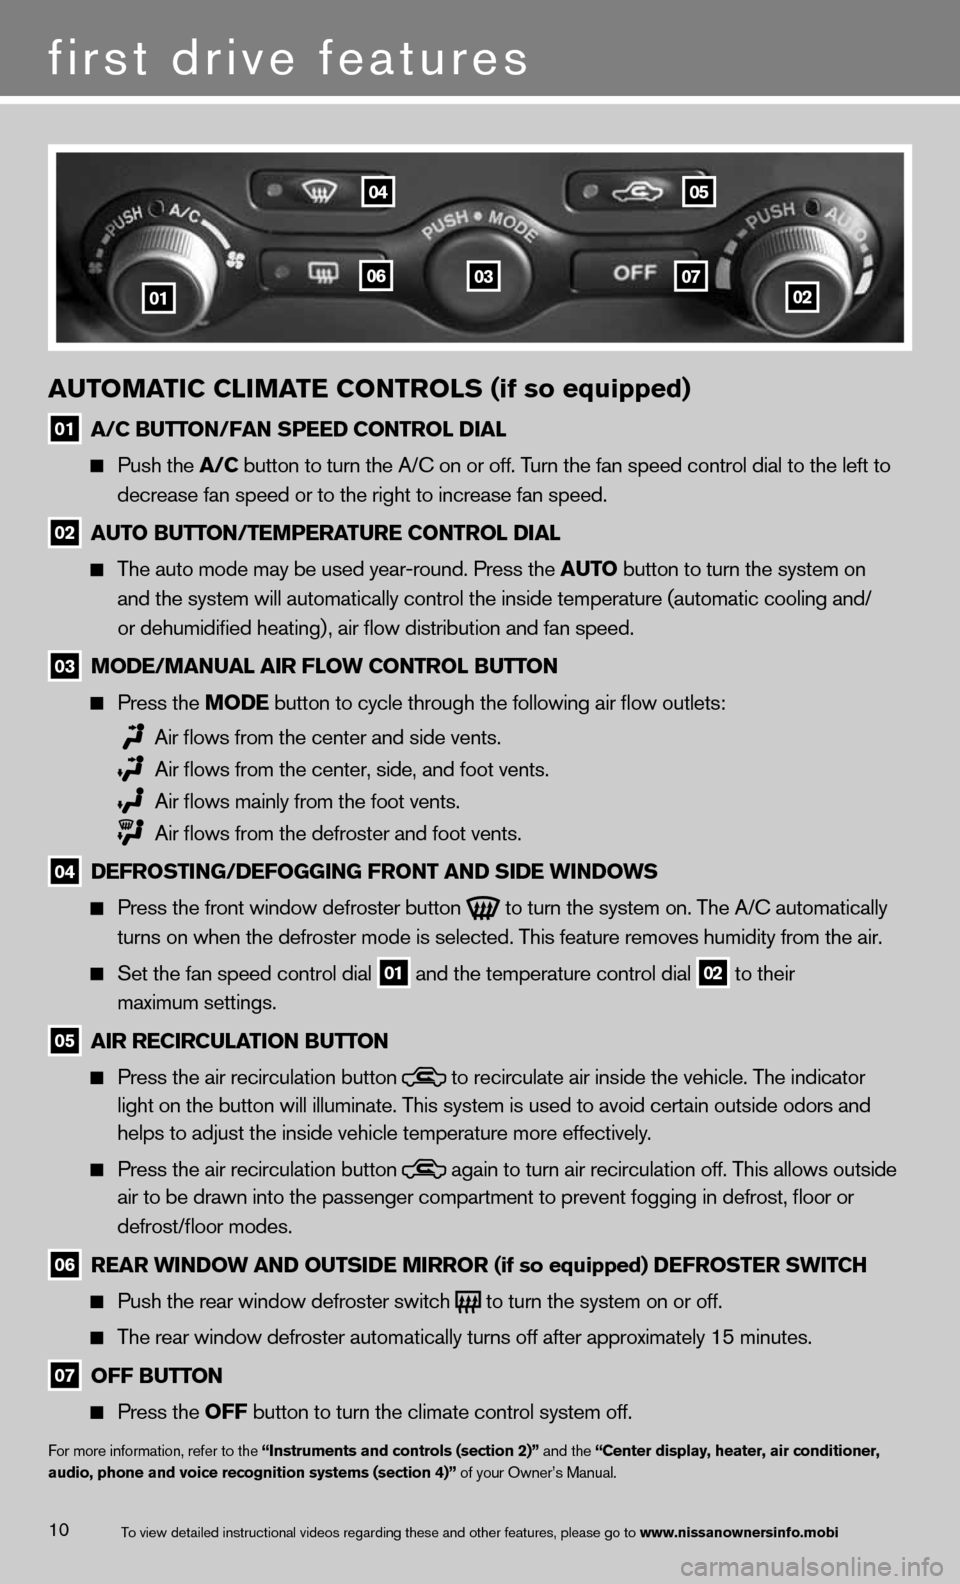 NISSAN 370Z ROADSTER 2013 Z34 Quick Reference Guide 10 \fUTOM\fTIC C\bIM\fTE CONTRO\bS (if so equipped) 01 \f/C BUTTON/F\fN SPEED CONTRO\b\F DI\f\b      Push \fhe \f/C bu\f\fon \fo \furn \fhe A\m/C on or off. \burn \fhe fan speed c\mon\frol dial \fo \f